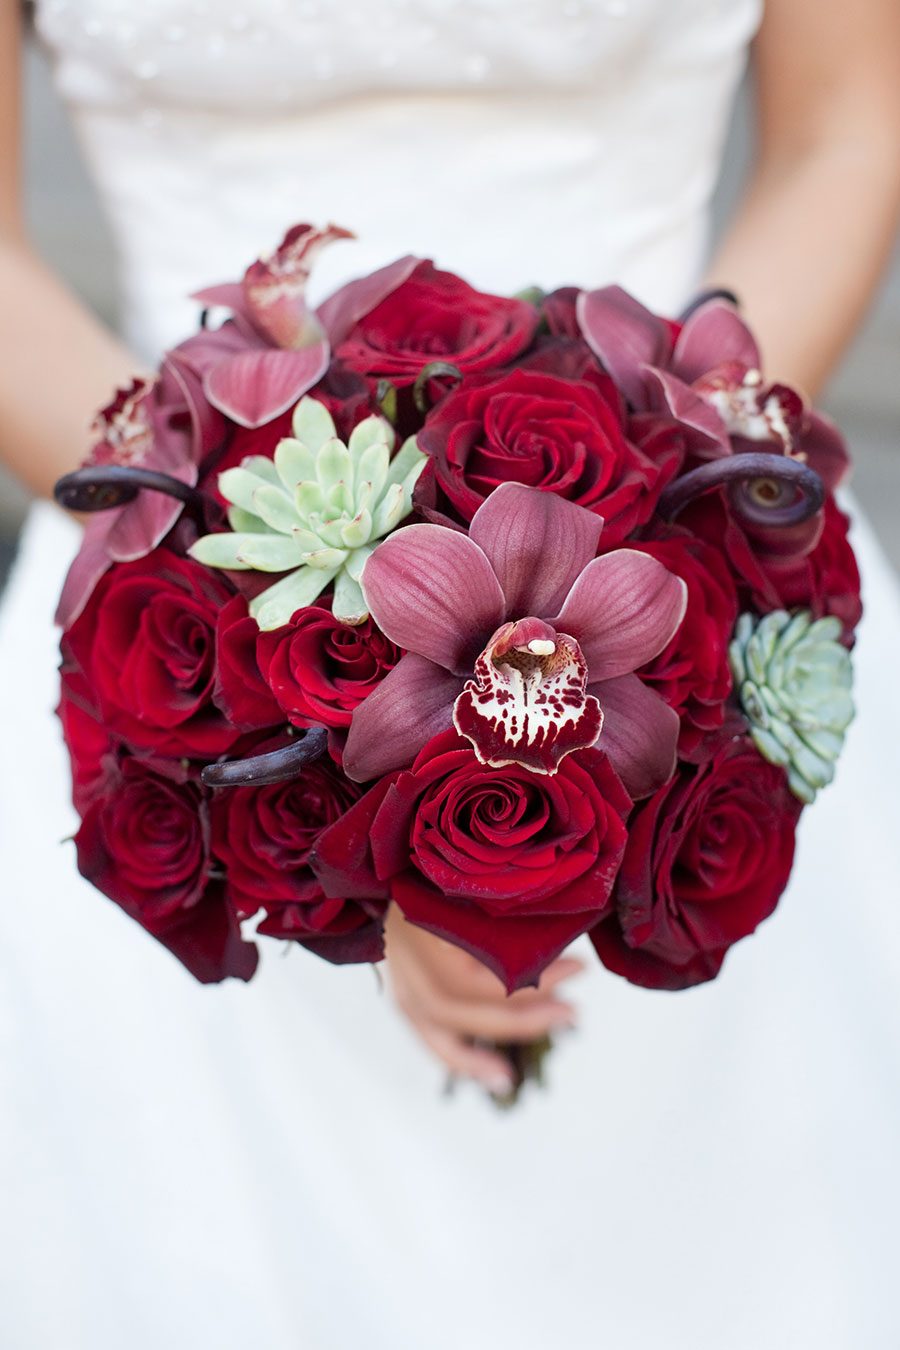 Succulent and red rose wedding bouquet